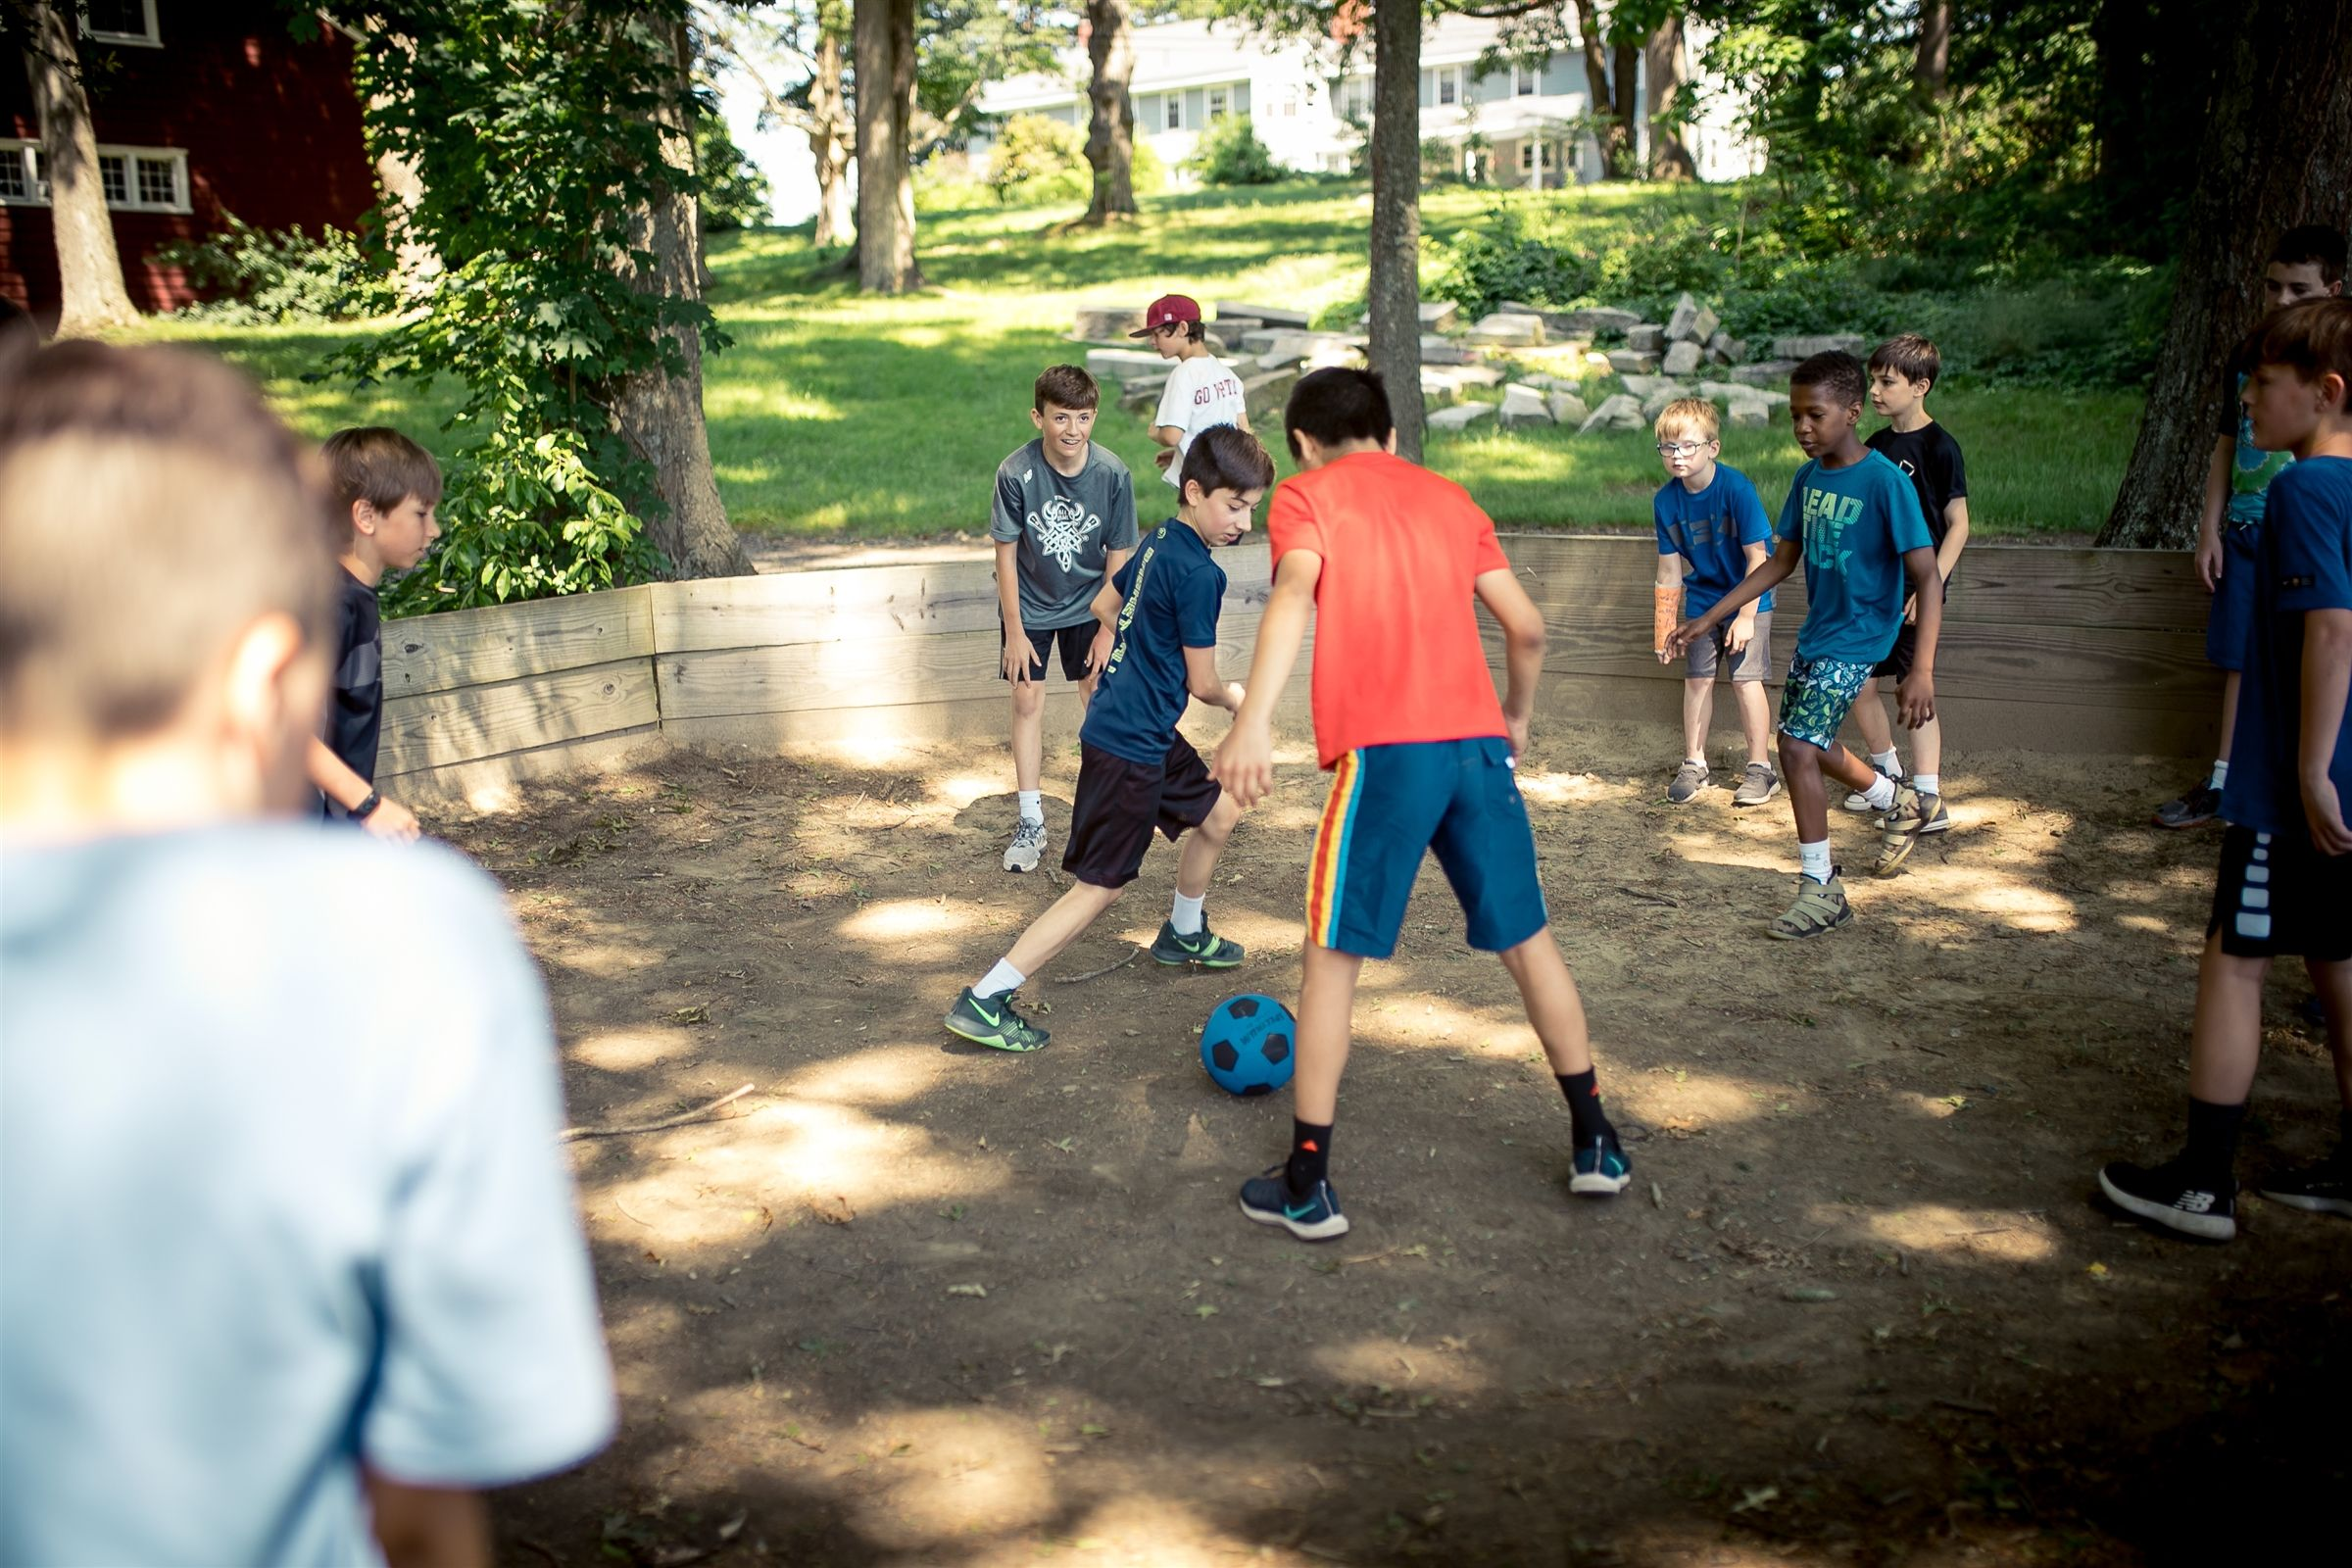 Every play Gaga Ball? Ask any FaySummer camper, and he or she will tell you that the spirited gaga tournaments in our custom gaga court are a highlight of the summer.